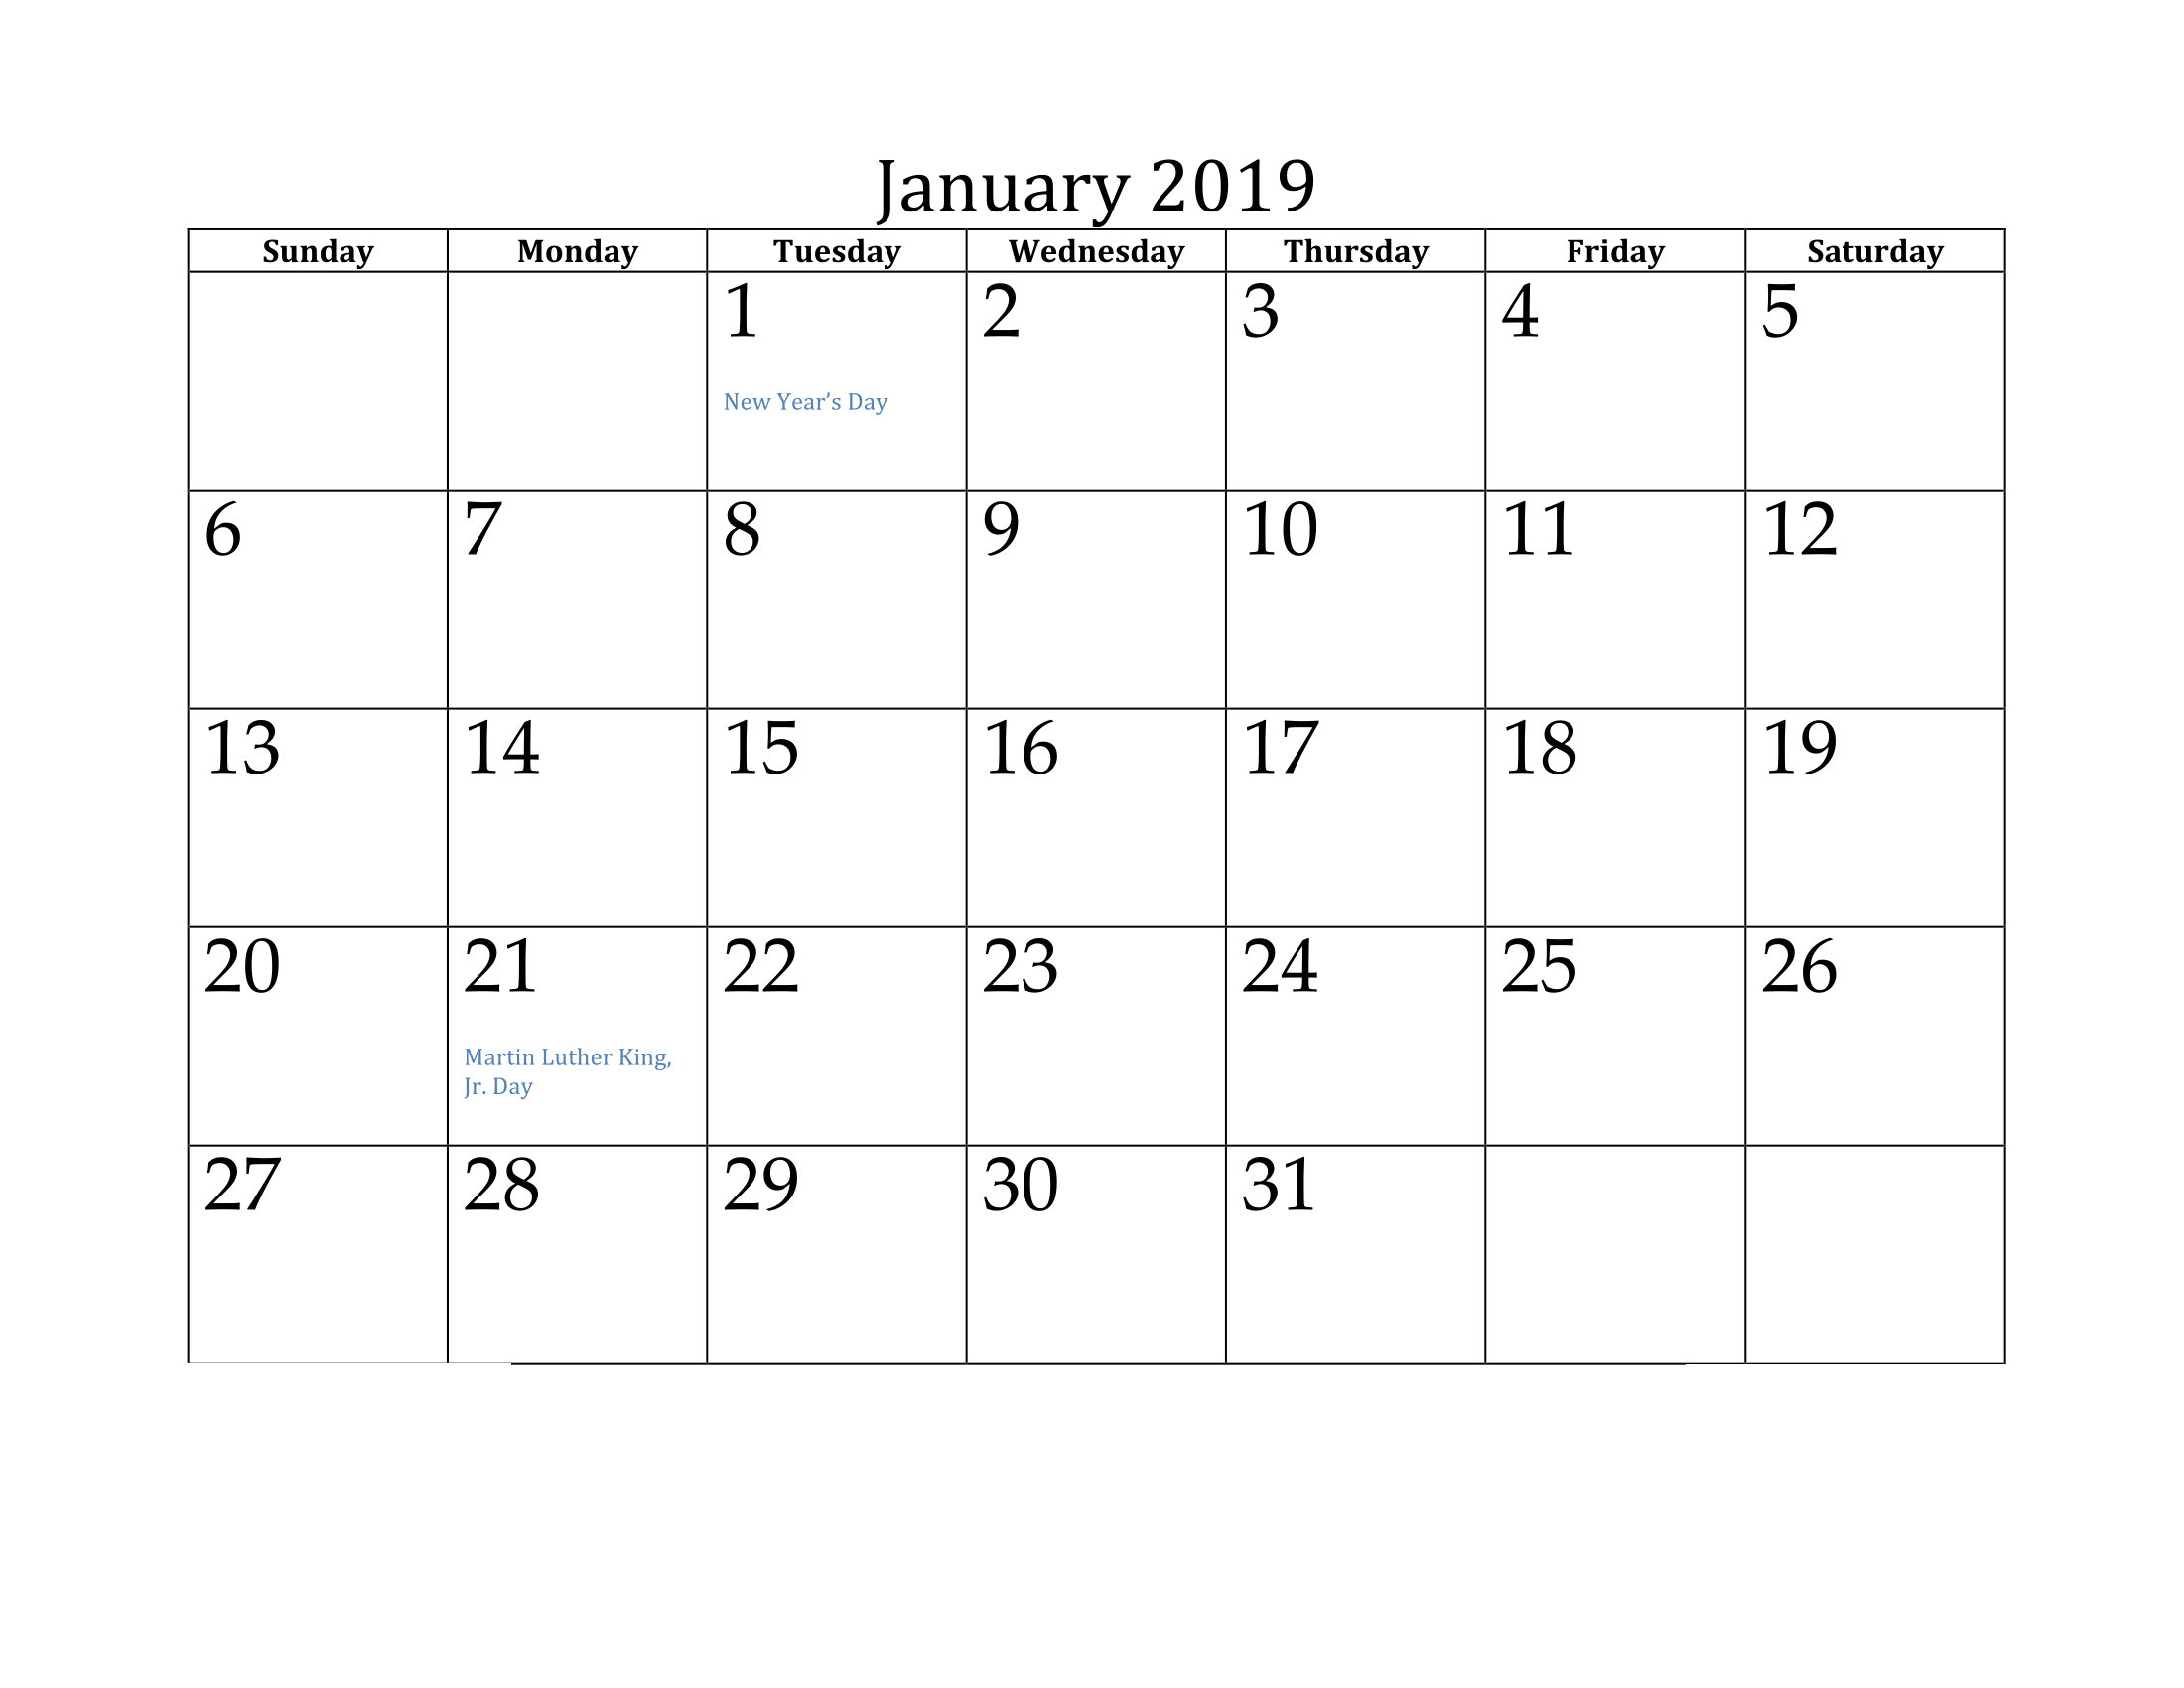 January 2019 Calendar With Bank Holidays